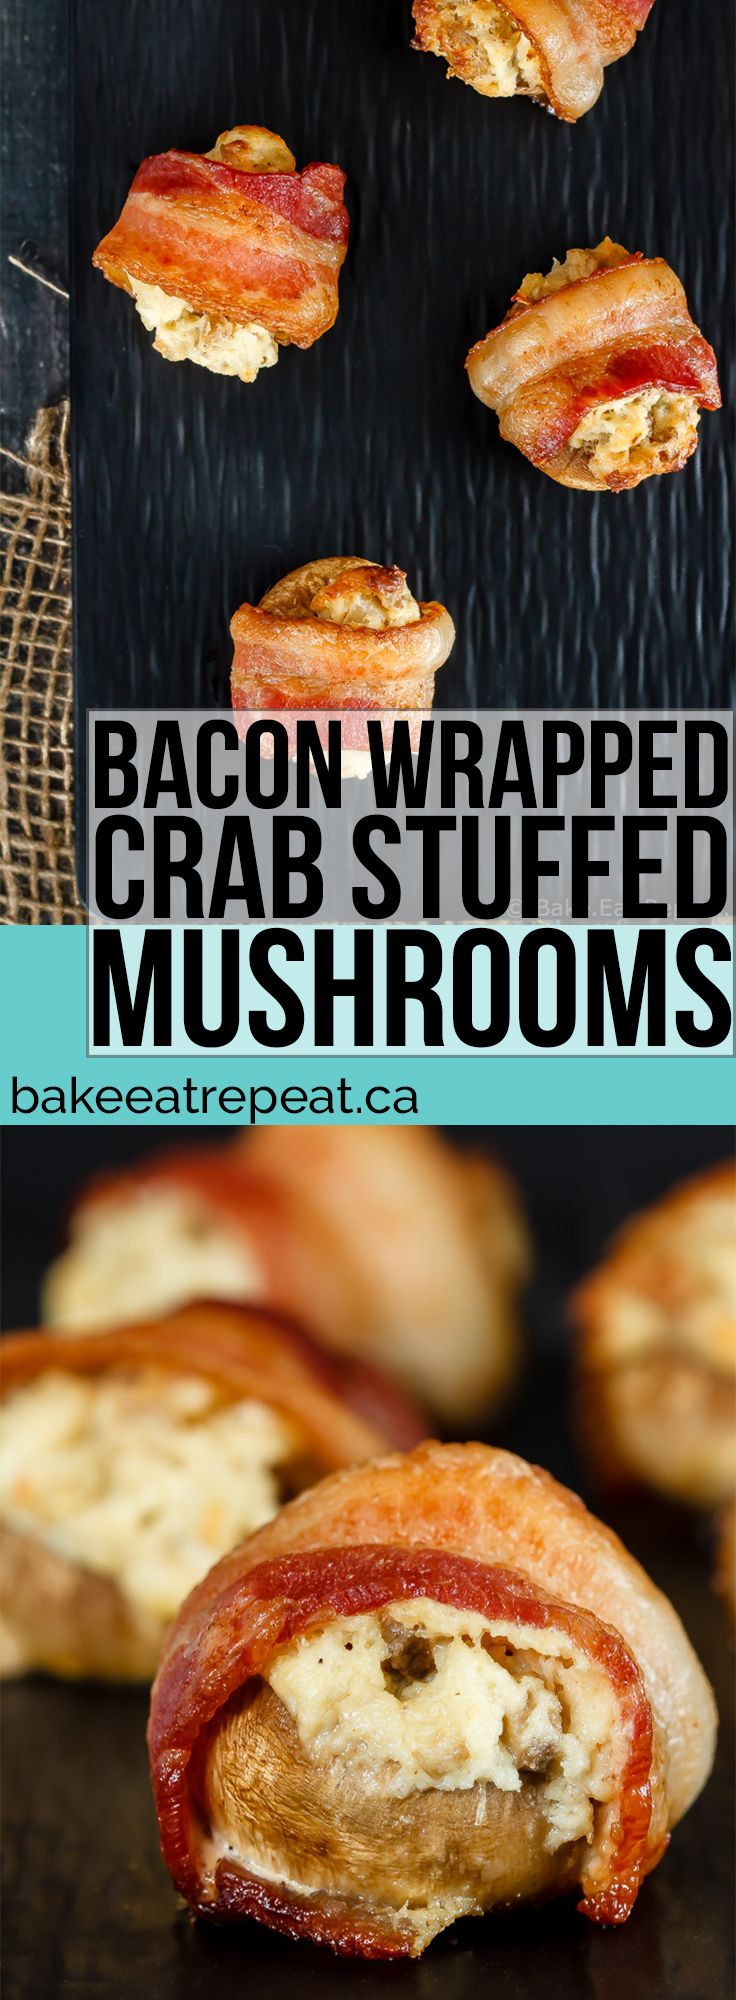 An easy and delicious appetizer that can be made ahead of time. These creamy, cheesy, crab stuffed mushrooms are wrapped in bacon for the perfect appetizer! #appetizer #mushrooms #bacon